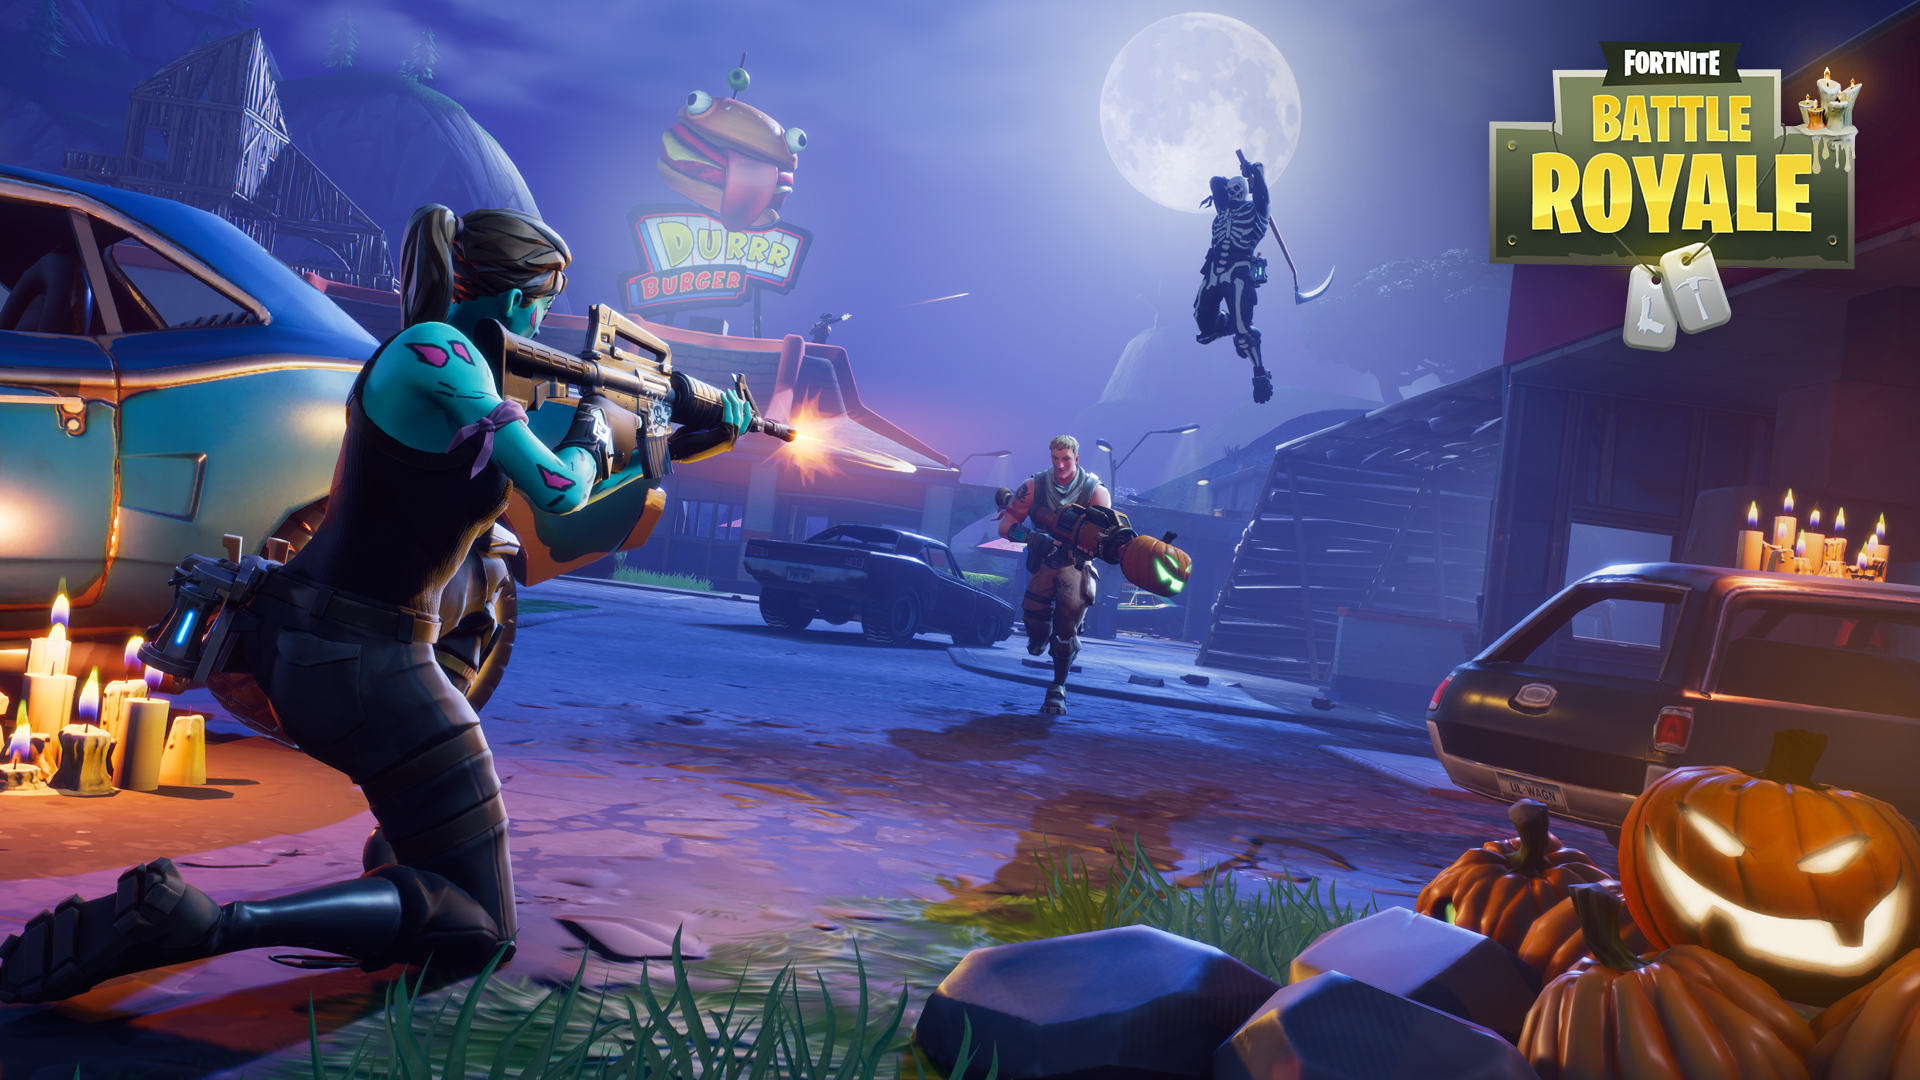 Fortnite%2Fblog%2Ffortnitemares-update-1-8-patch-notes%2FPVP_Gameplay_EN-1920x1080-c00c544f2a1b2146ac3fa05a804c96ba68653e70